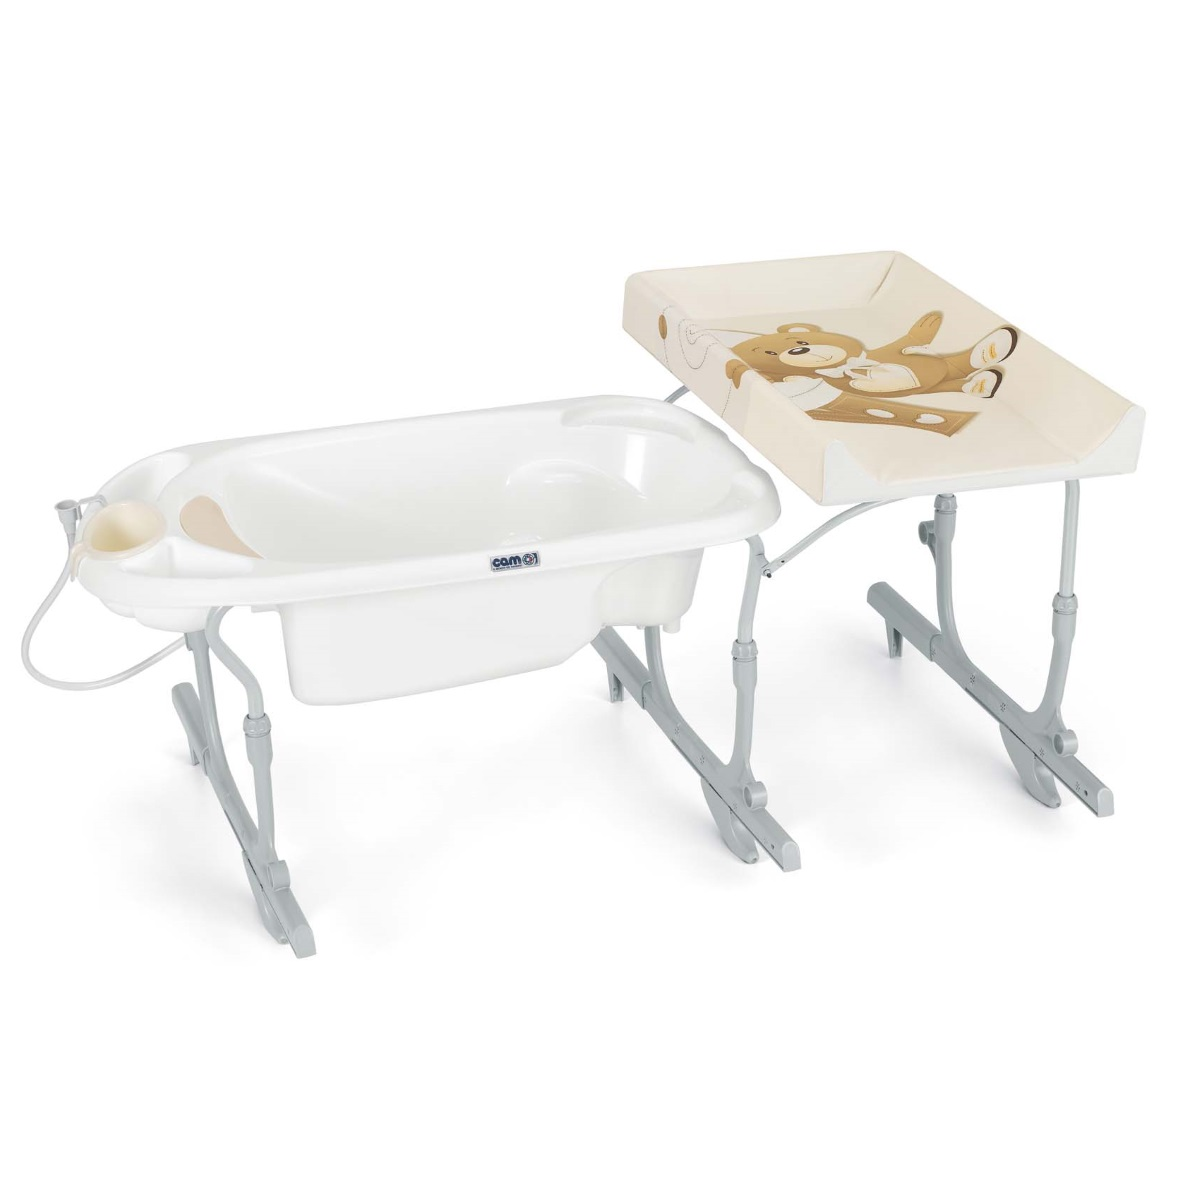 Banheira muda fraldas CAM Idro Baby Estraibile Bath with changing matress